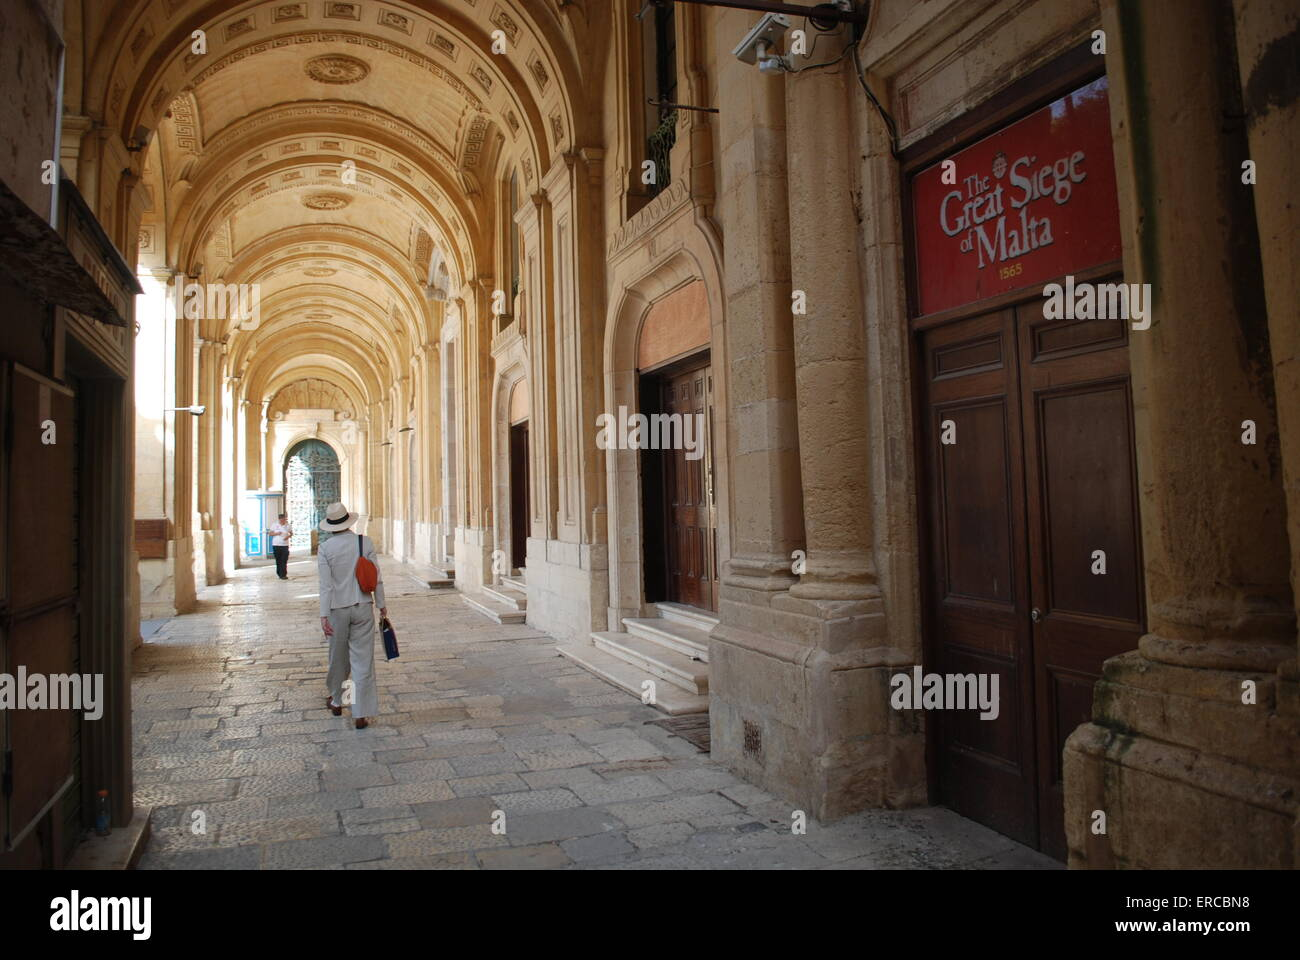 A tourist in Valletta walks past a sign commemorating the 450th anniversary of the Great Siege of Malta. Pix by: - Stock Image